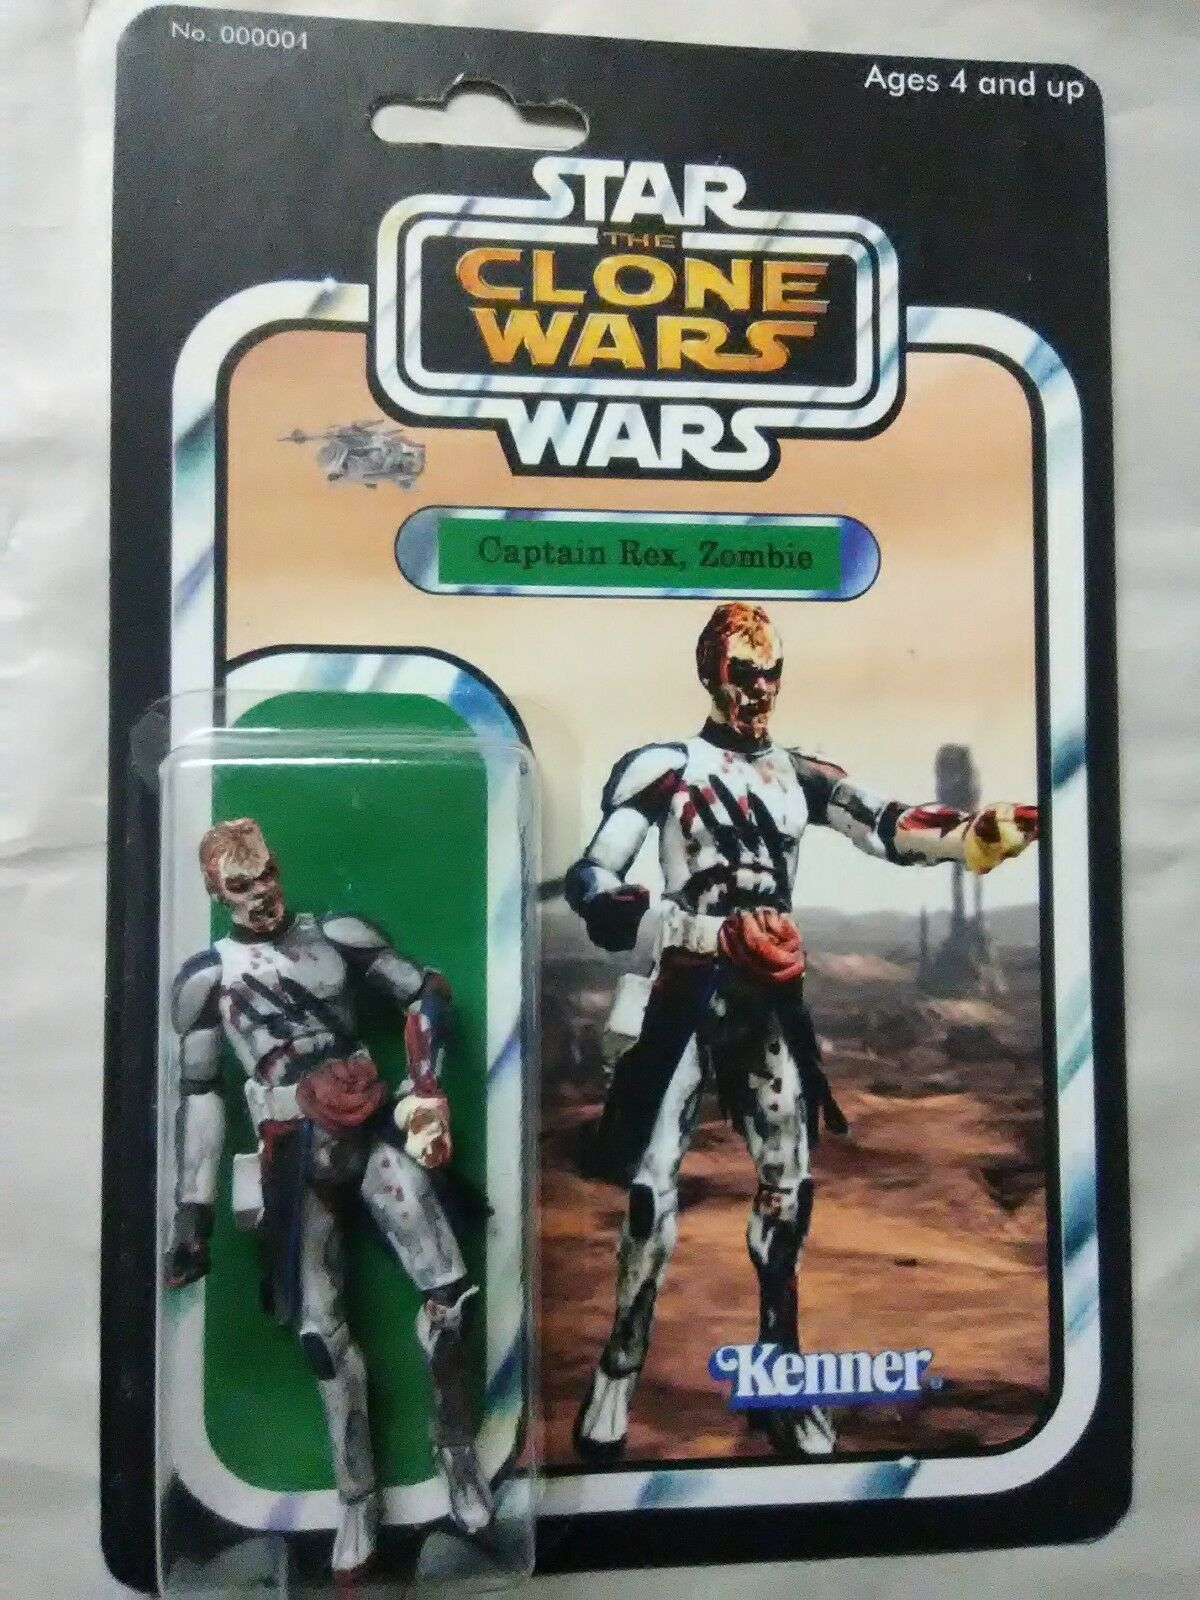 STAR WARS CLONE WARS CAPTAIN REX ZOMBIE WARS DKE BOOTLEG FIGURE 1 1 WITH CASE